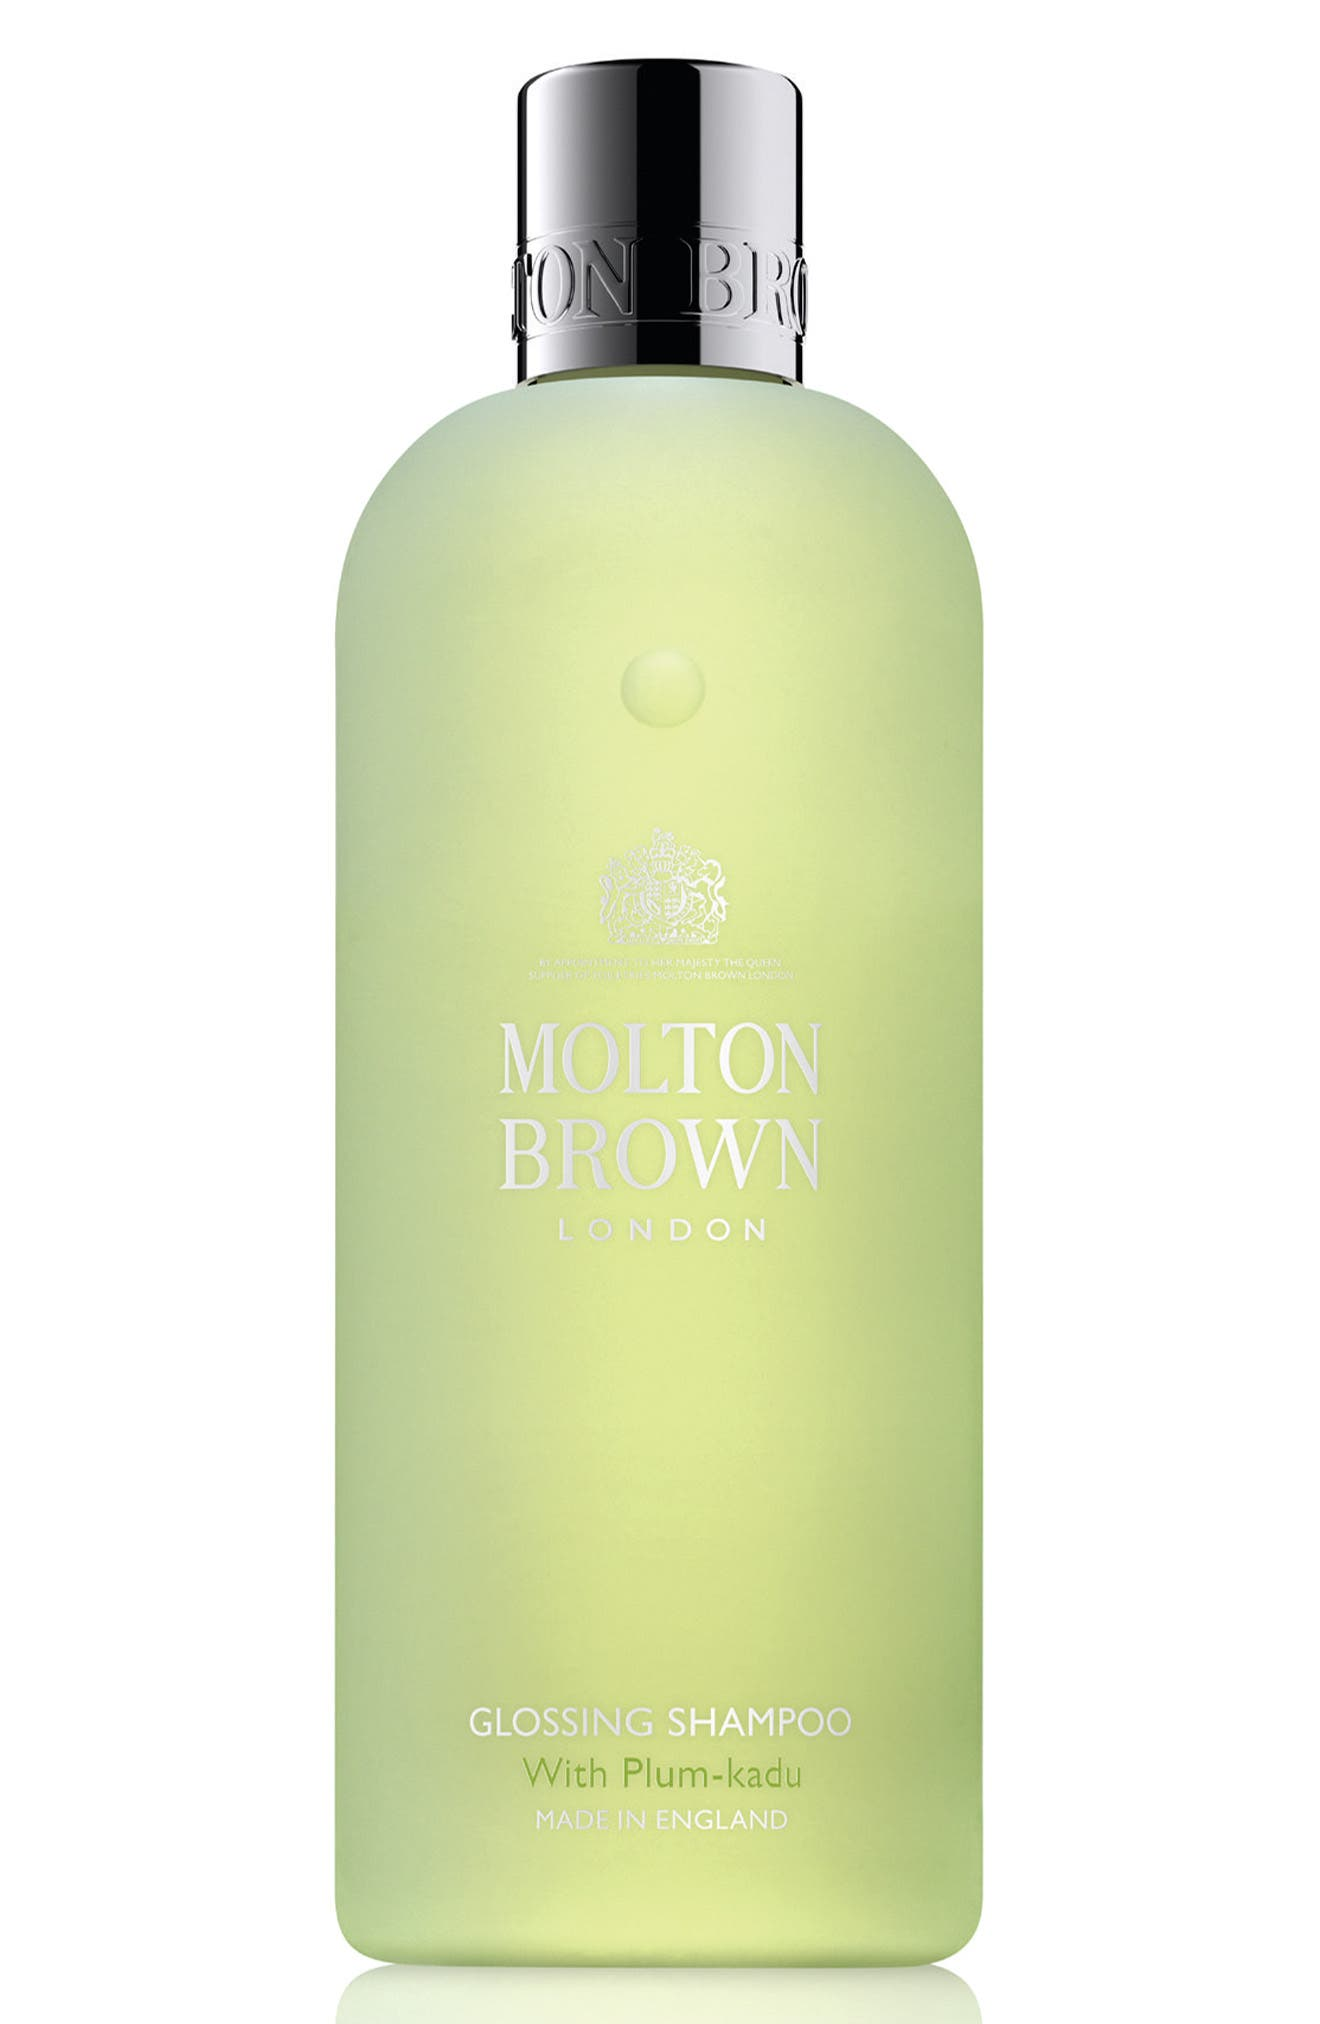 MOLTON BROWN London Glossing Shampoo with Plum Kadu